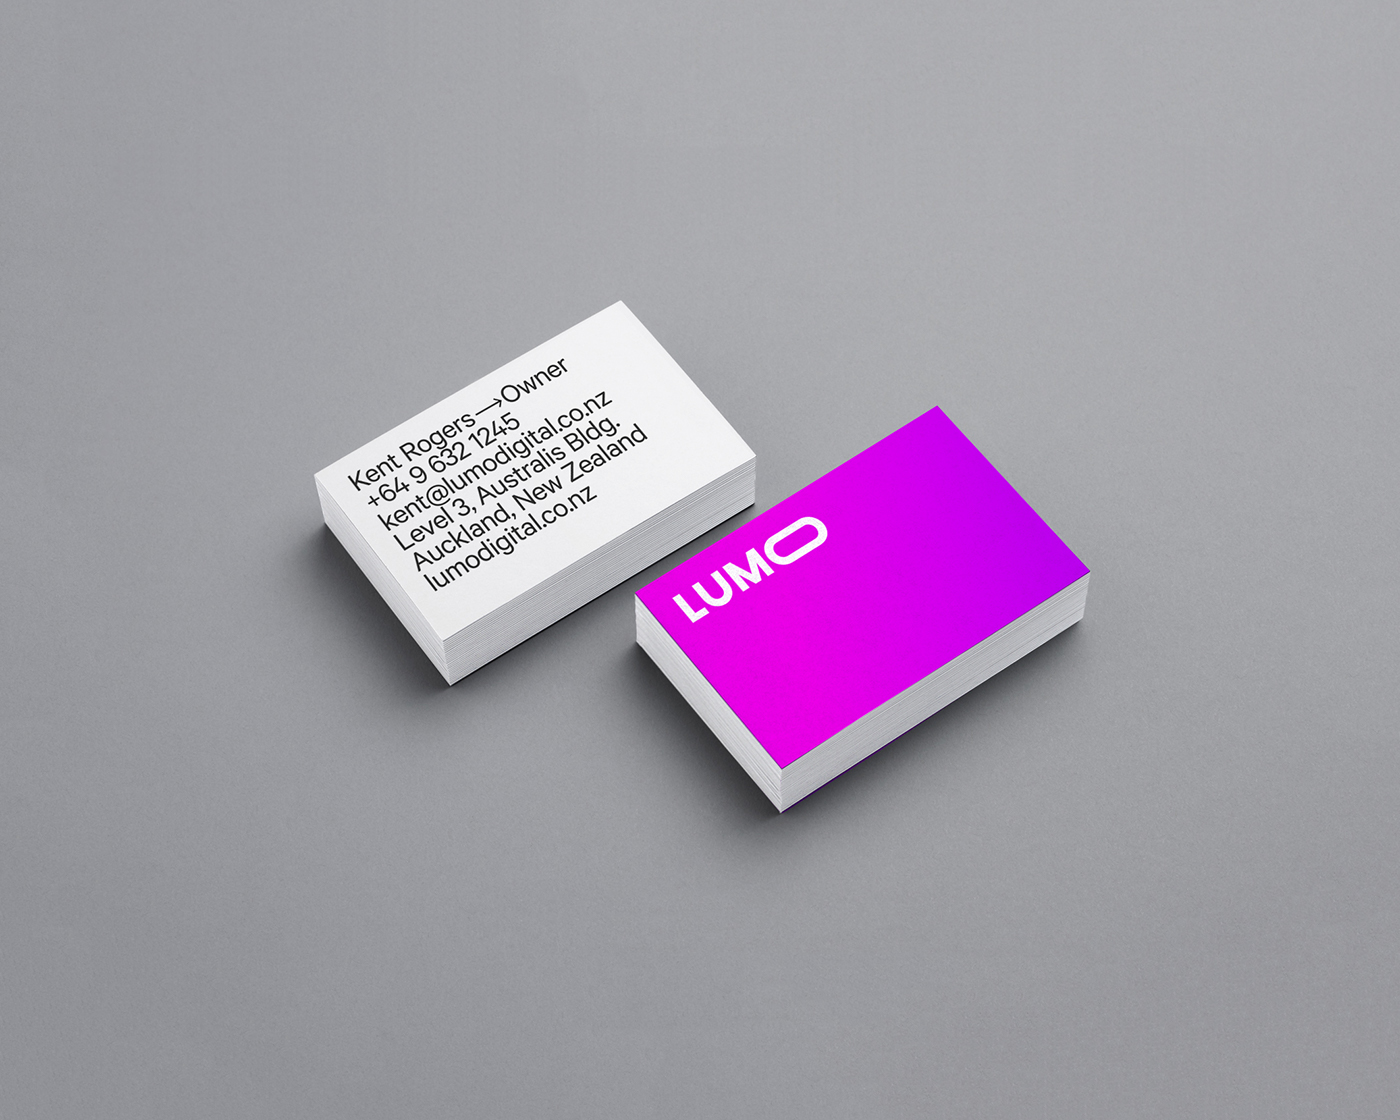 Lumo branding on behance lumo is a boutique specialist outdoor advertising business they approached switch to create a brand identity and language for them to use online and in reheart Choice Image